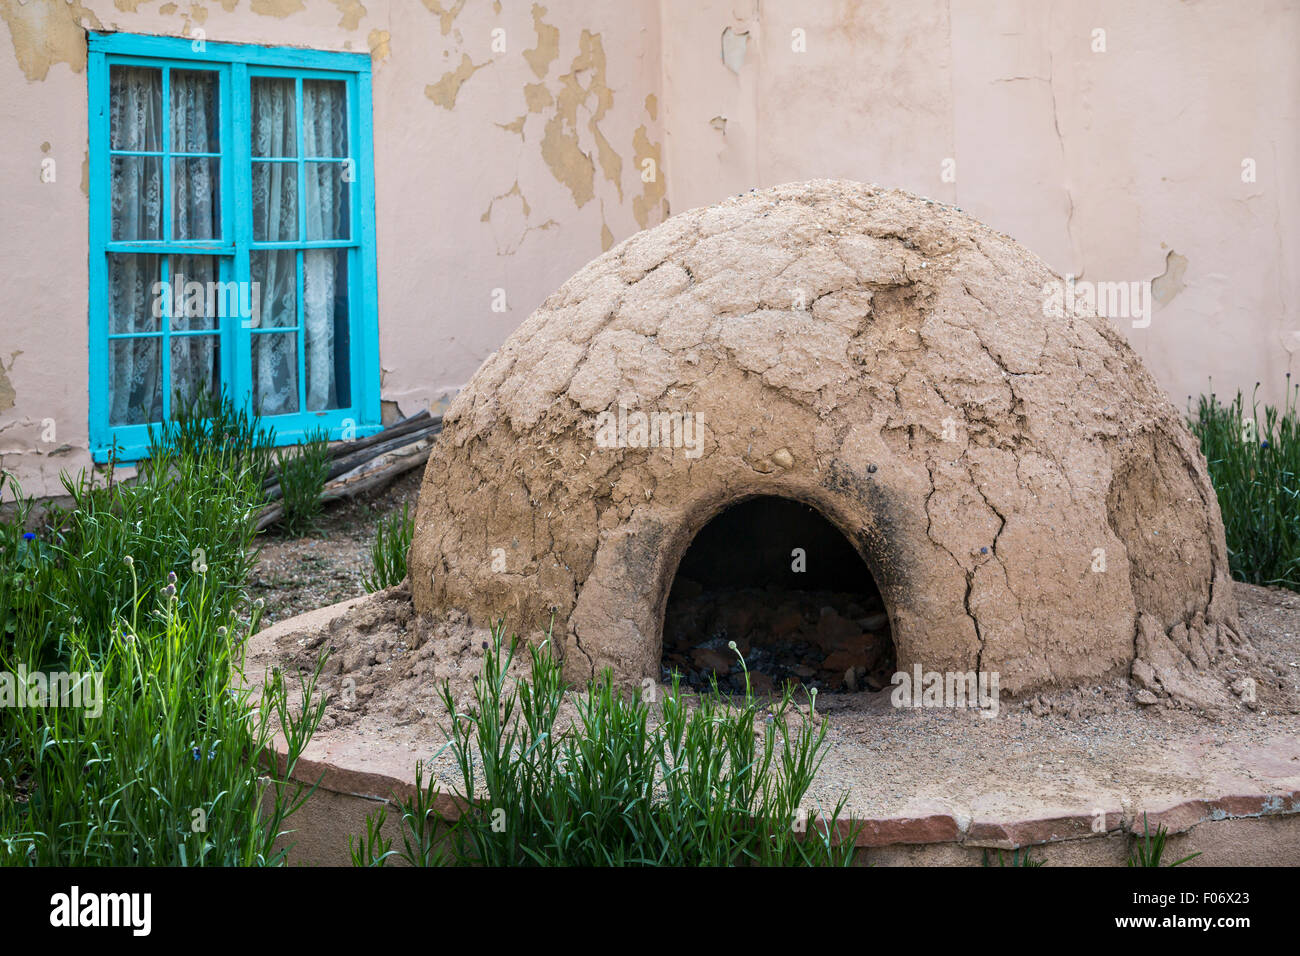 Ein Outdoor-Backofen in Taos, New Mexico, USA. Stockbild